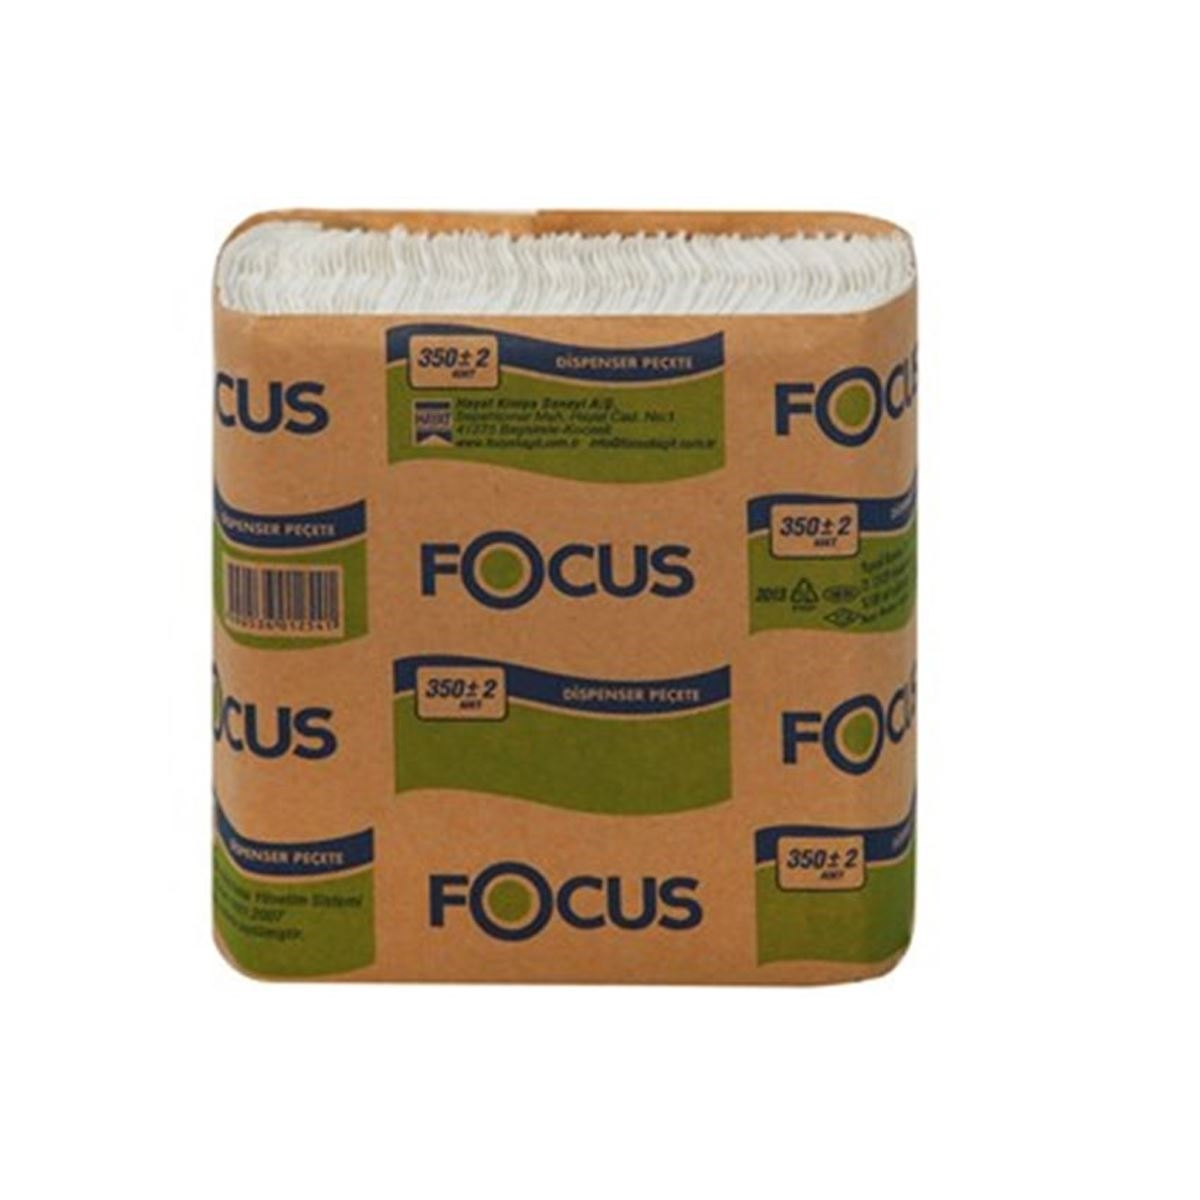 Focus Extra Dispenser Peçete 350*12 resmi